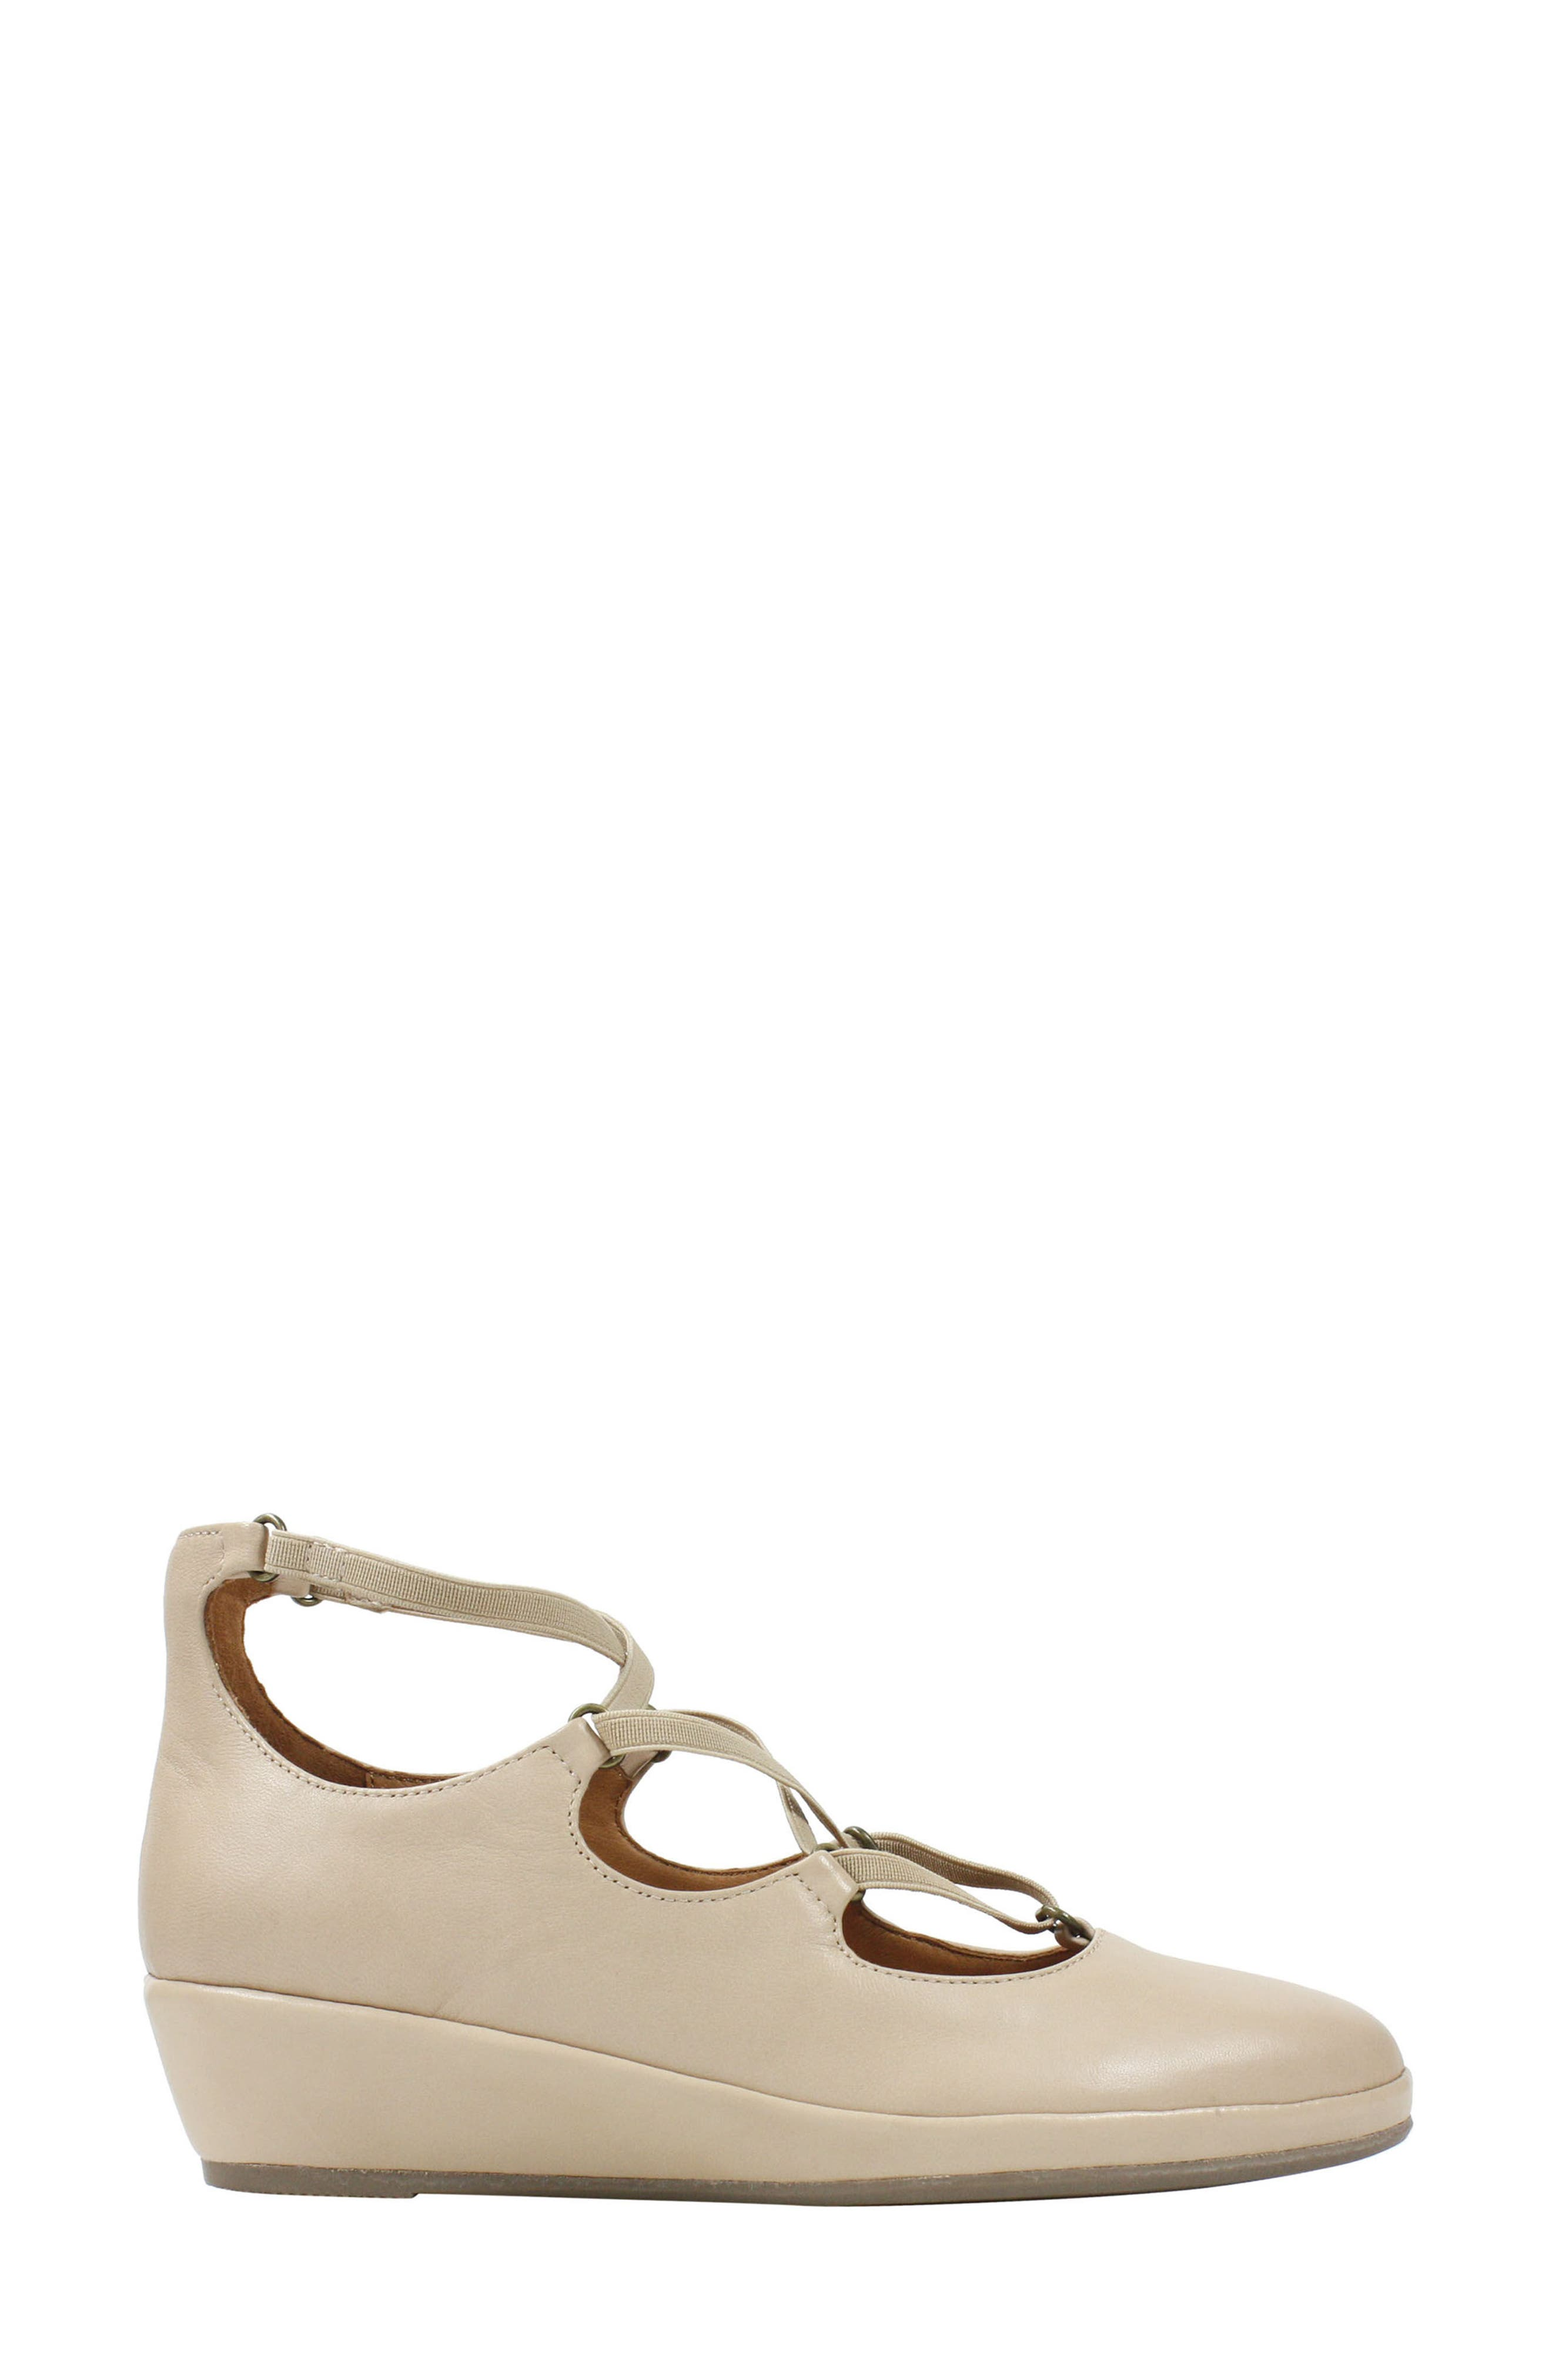 Benham Wedge,                             Alternate thumbnail 3, color,                             Nude Leather